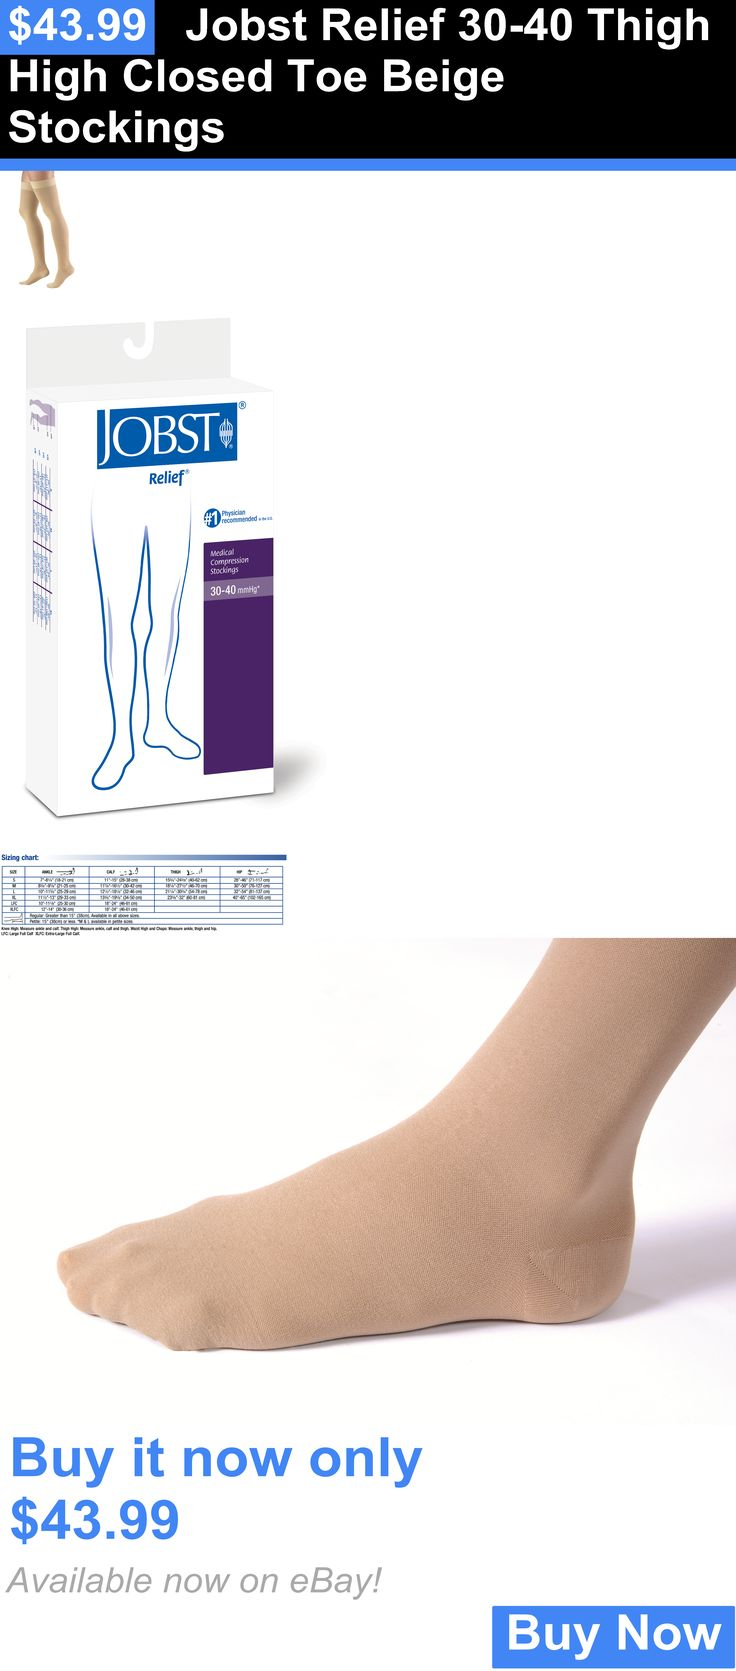 Compression Garments: Jobst Relief 30-40 Thigh High Closed Toe Beige Stockings BUY IT NOW ONLY: $43.99